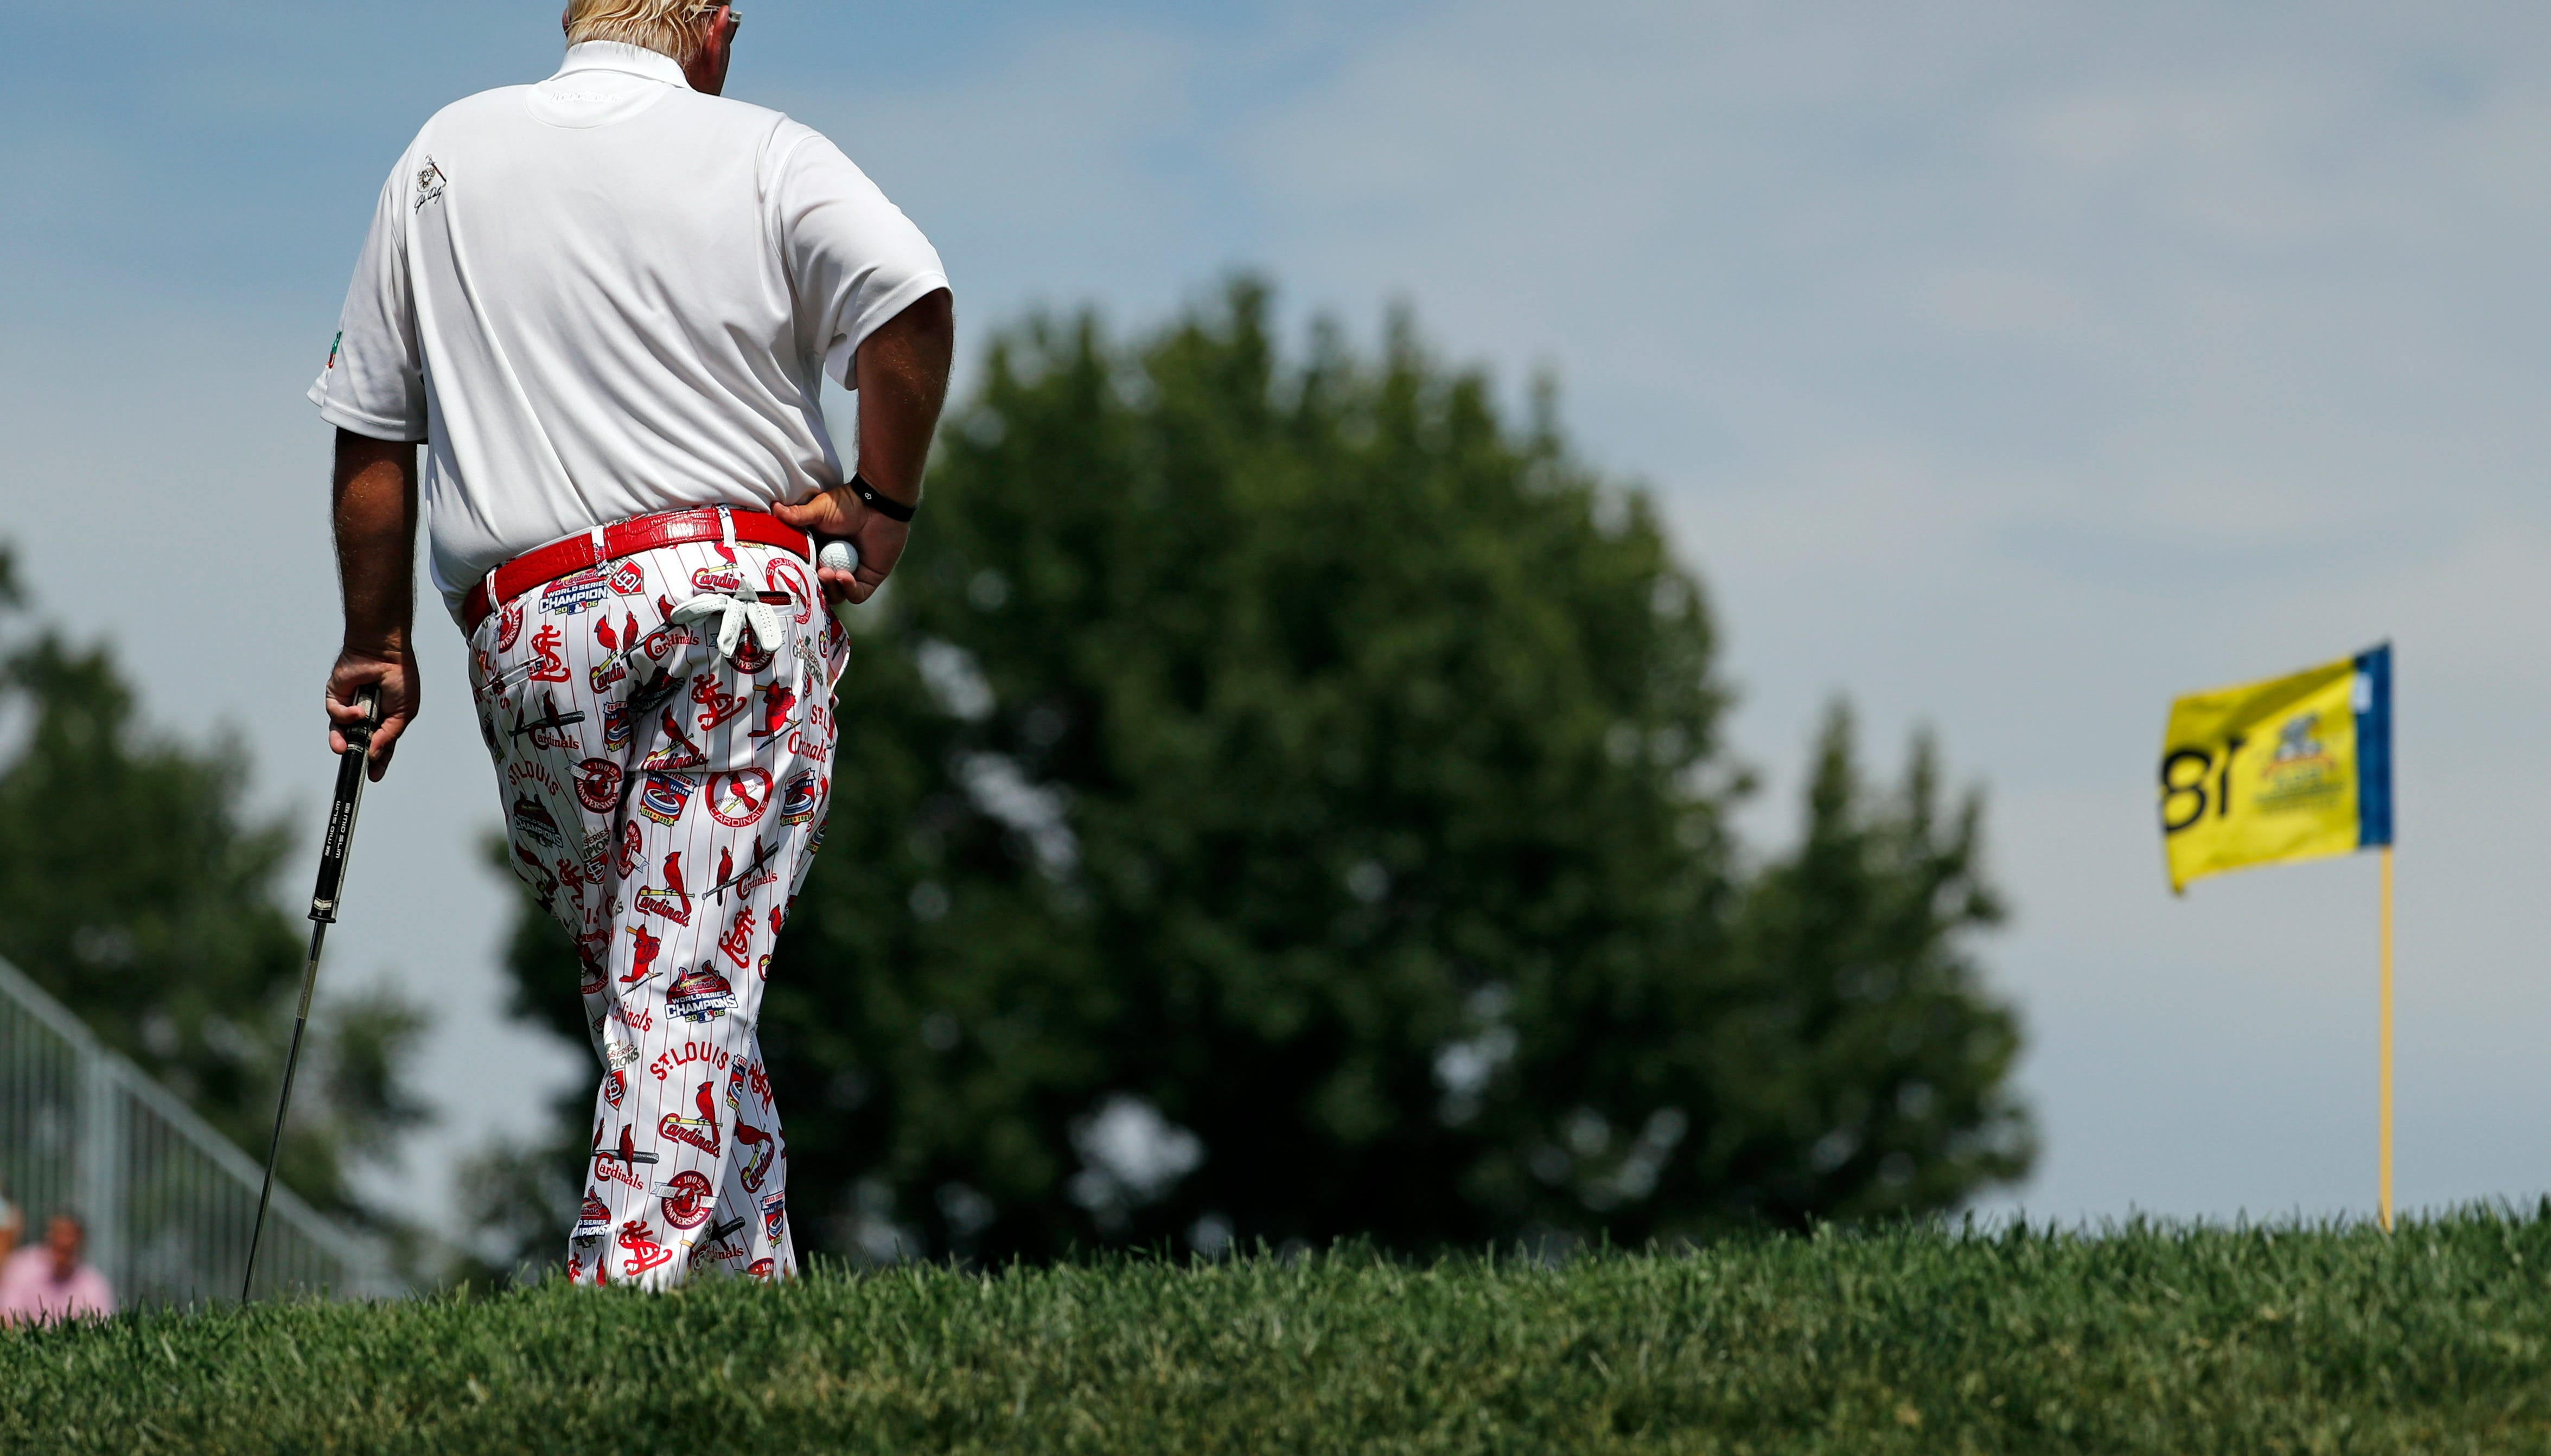 John Daly waits to putt on the 18th green during the first round of the PGA Championship golf tournament at Bellerive Country Club, Thursday, Aug. 9, 2018, in St. Louis. (AP Photo/Jeff Roberson)